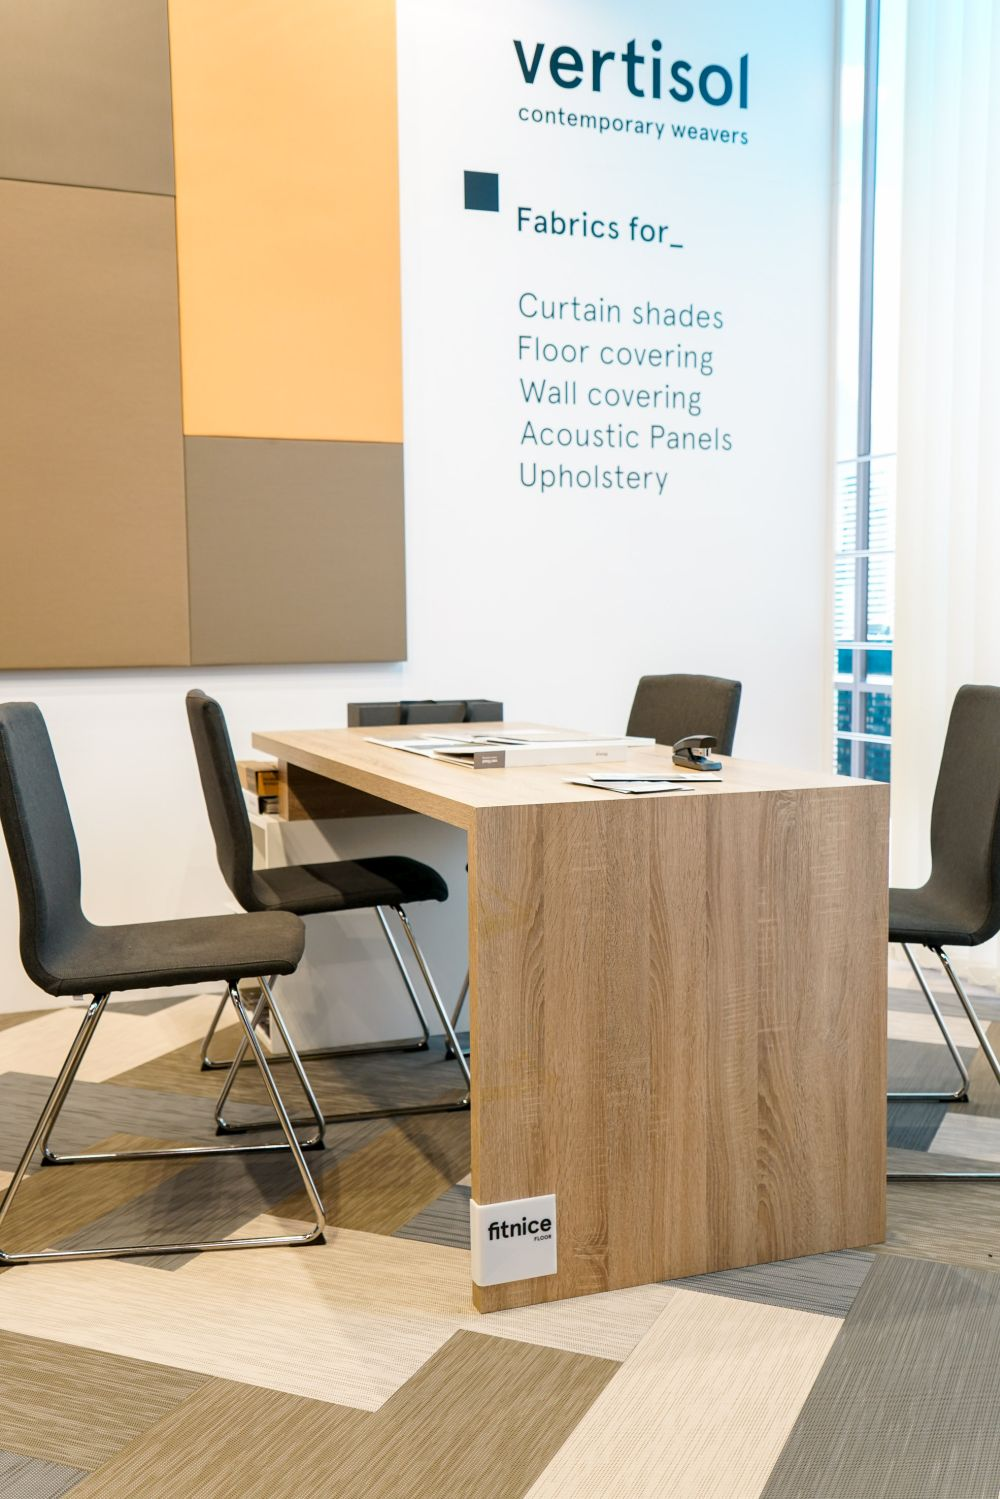 1572958304 478 make your workplace more appealing with these office furniture ideas - Make Your Workplace More Appealing with These Office Furniture Ideas